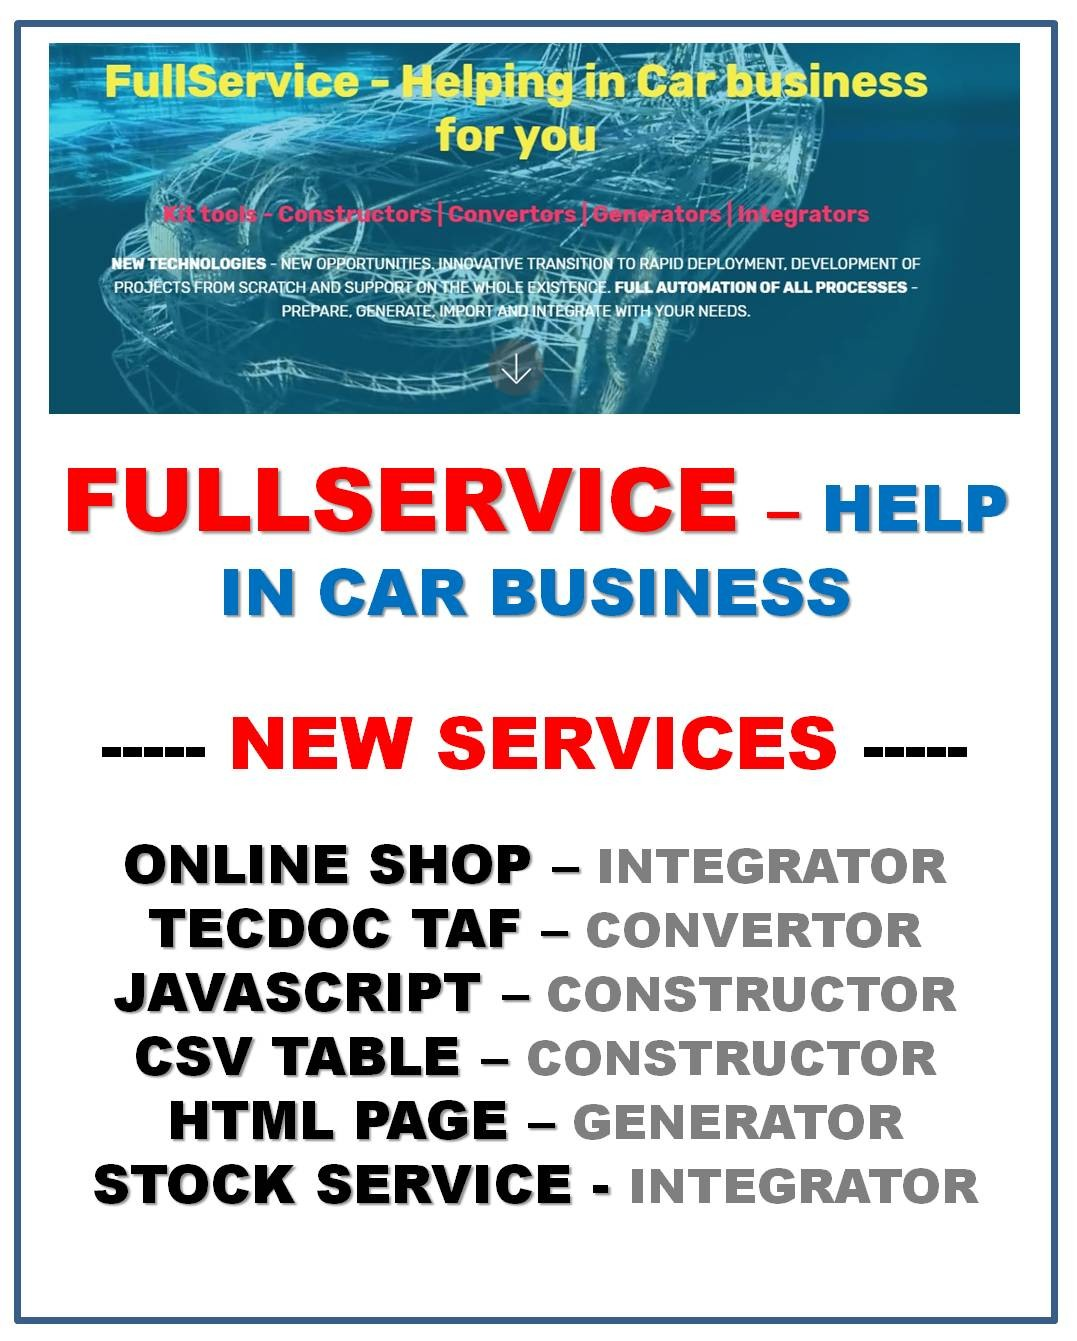 FullService - help in Car business